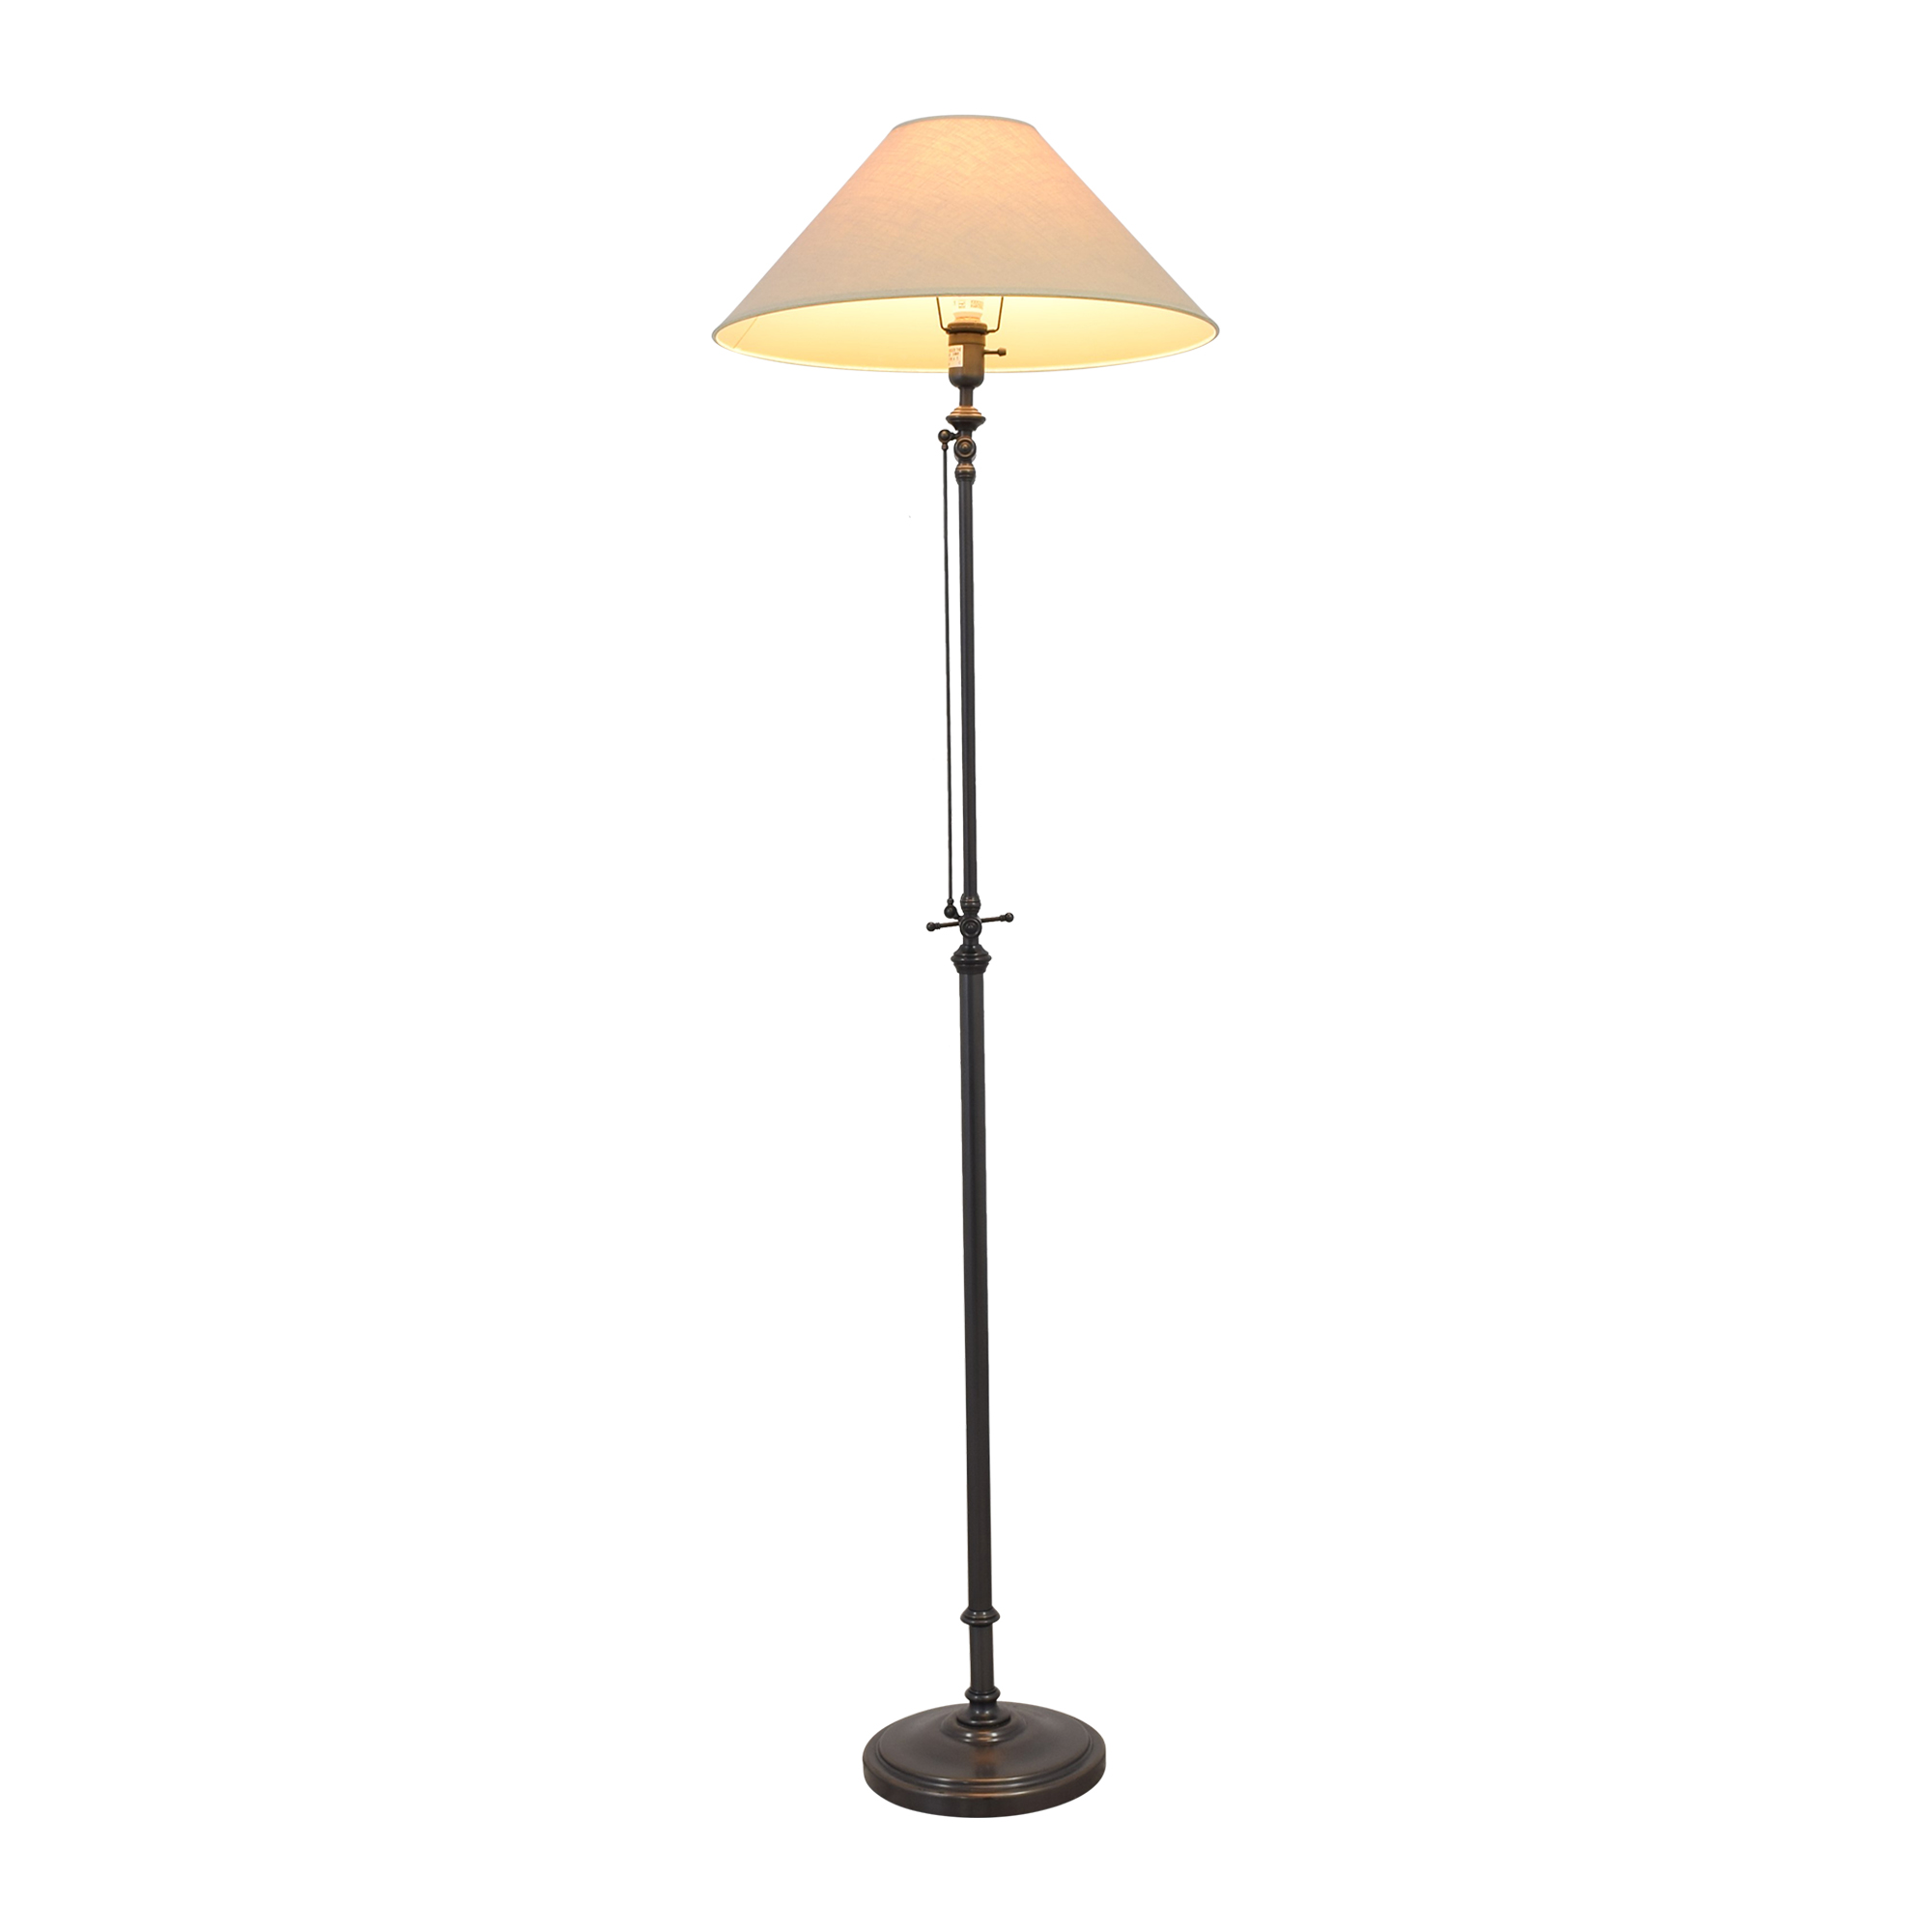 Pottery Barn Pottery Barn Articulating Floor Lamp second hand